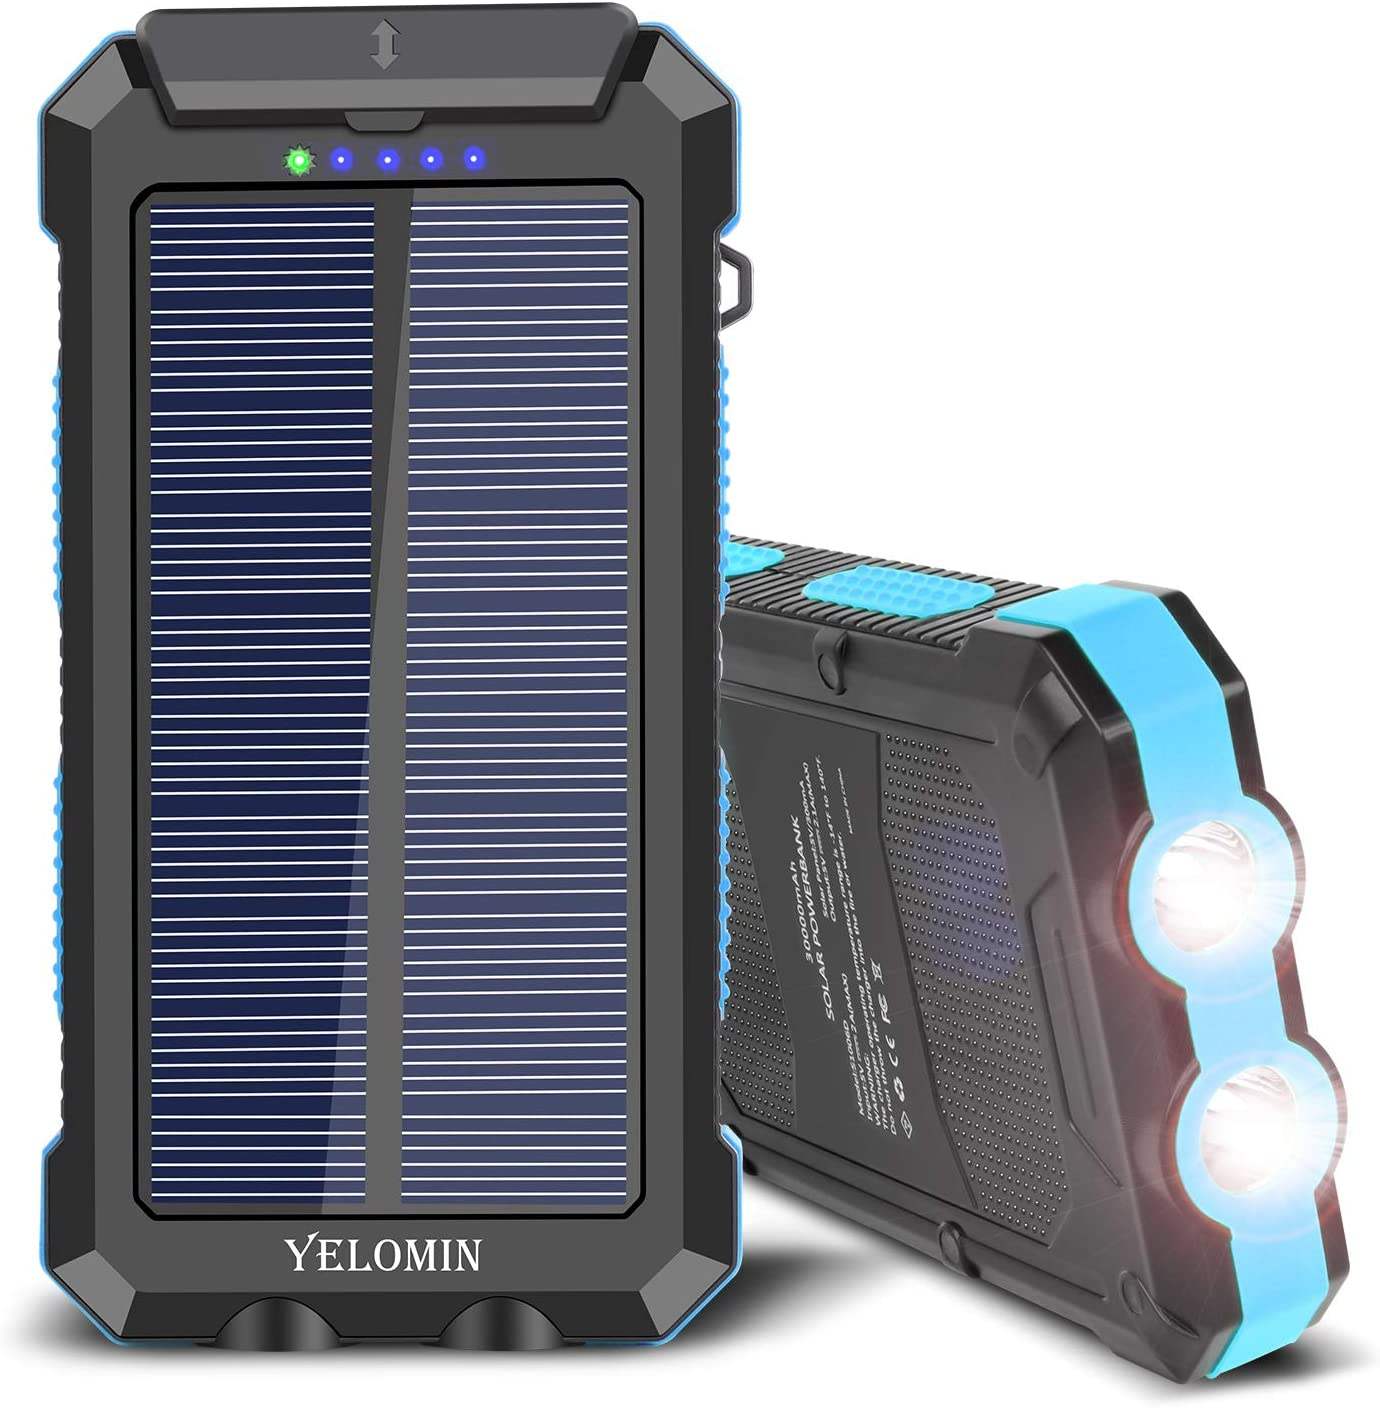 Solar Charger 30000mAh,YELOMIN Portable Outdoor Mobile Power Bank with Type-C Input Port Dual Flashlight High Capacity Camping External Backup Battery Pack for All Cellphones, Tablets and More